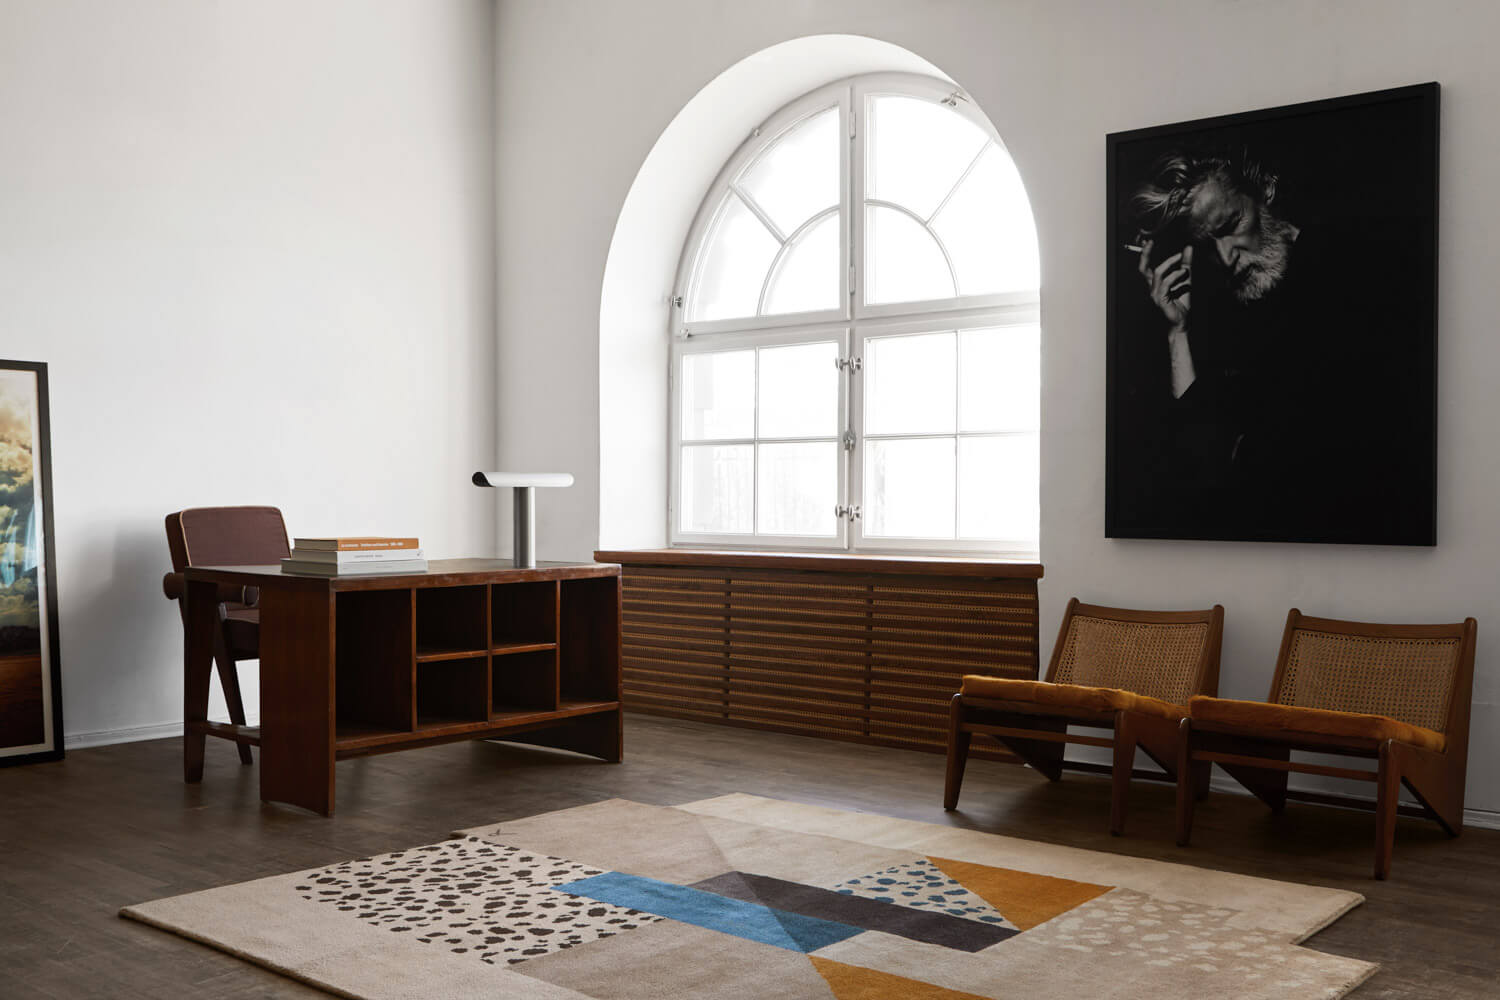 Art Deco Brown Rug in a beautiful studio office with antique furniture.